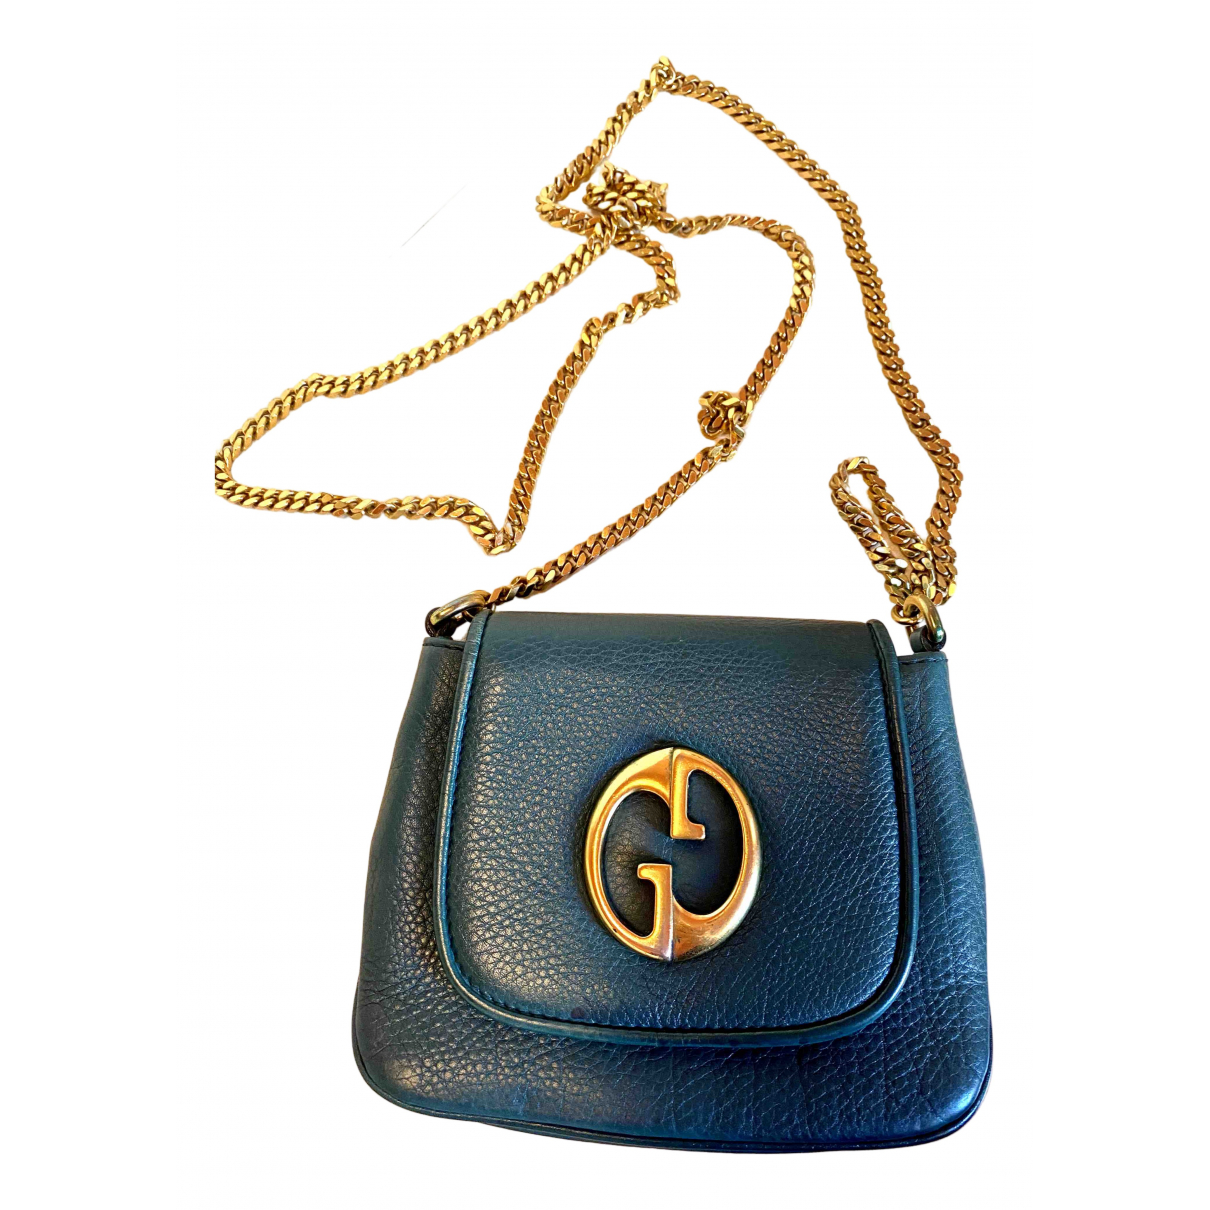 Gucci 1973 Black Leather handbag for Women \N